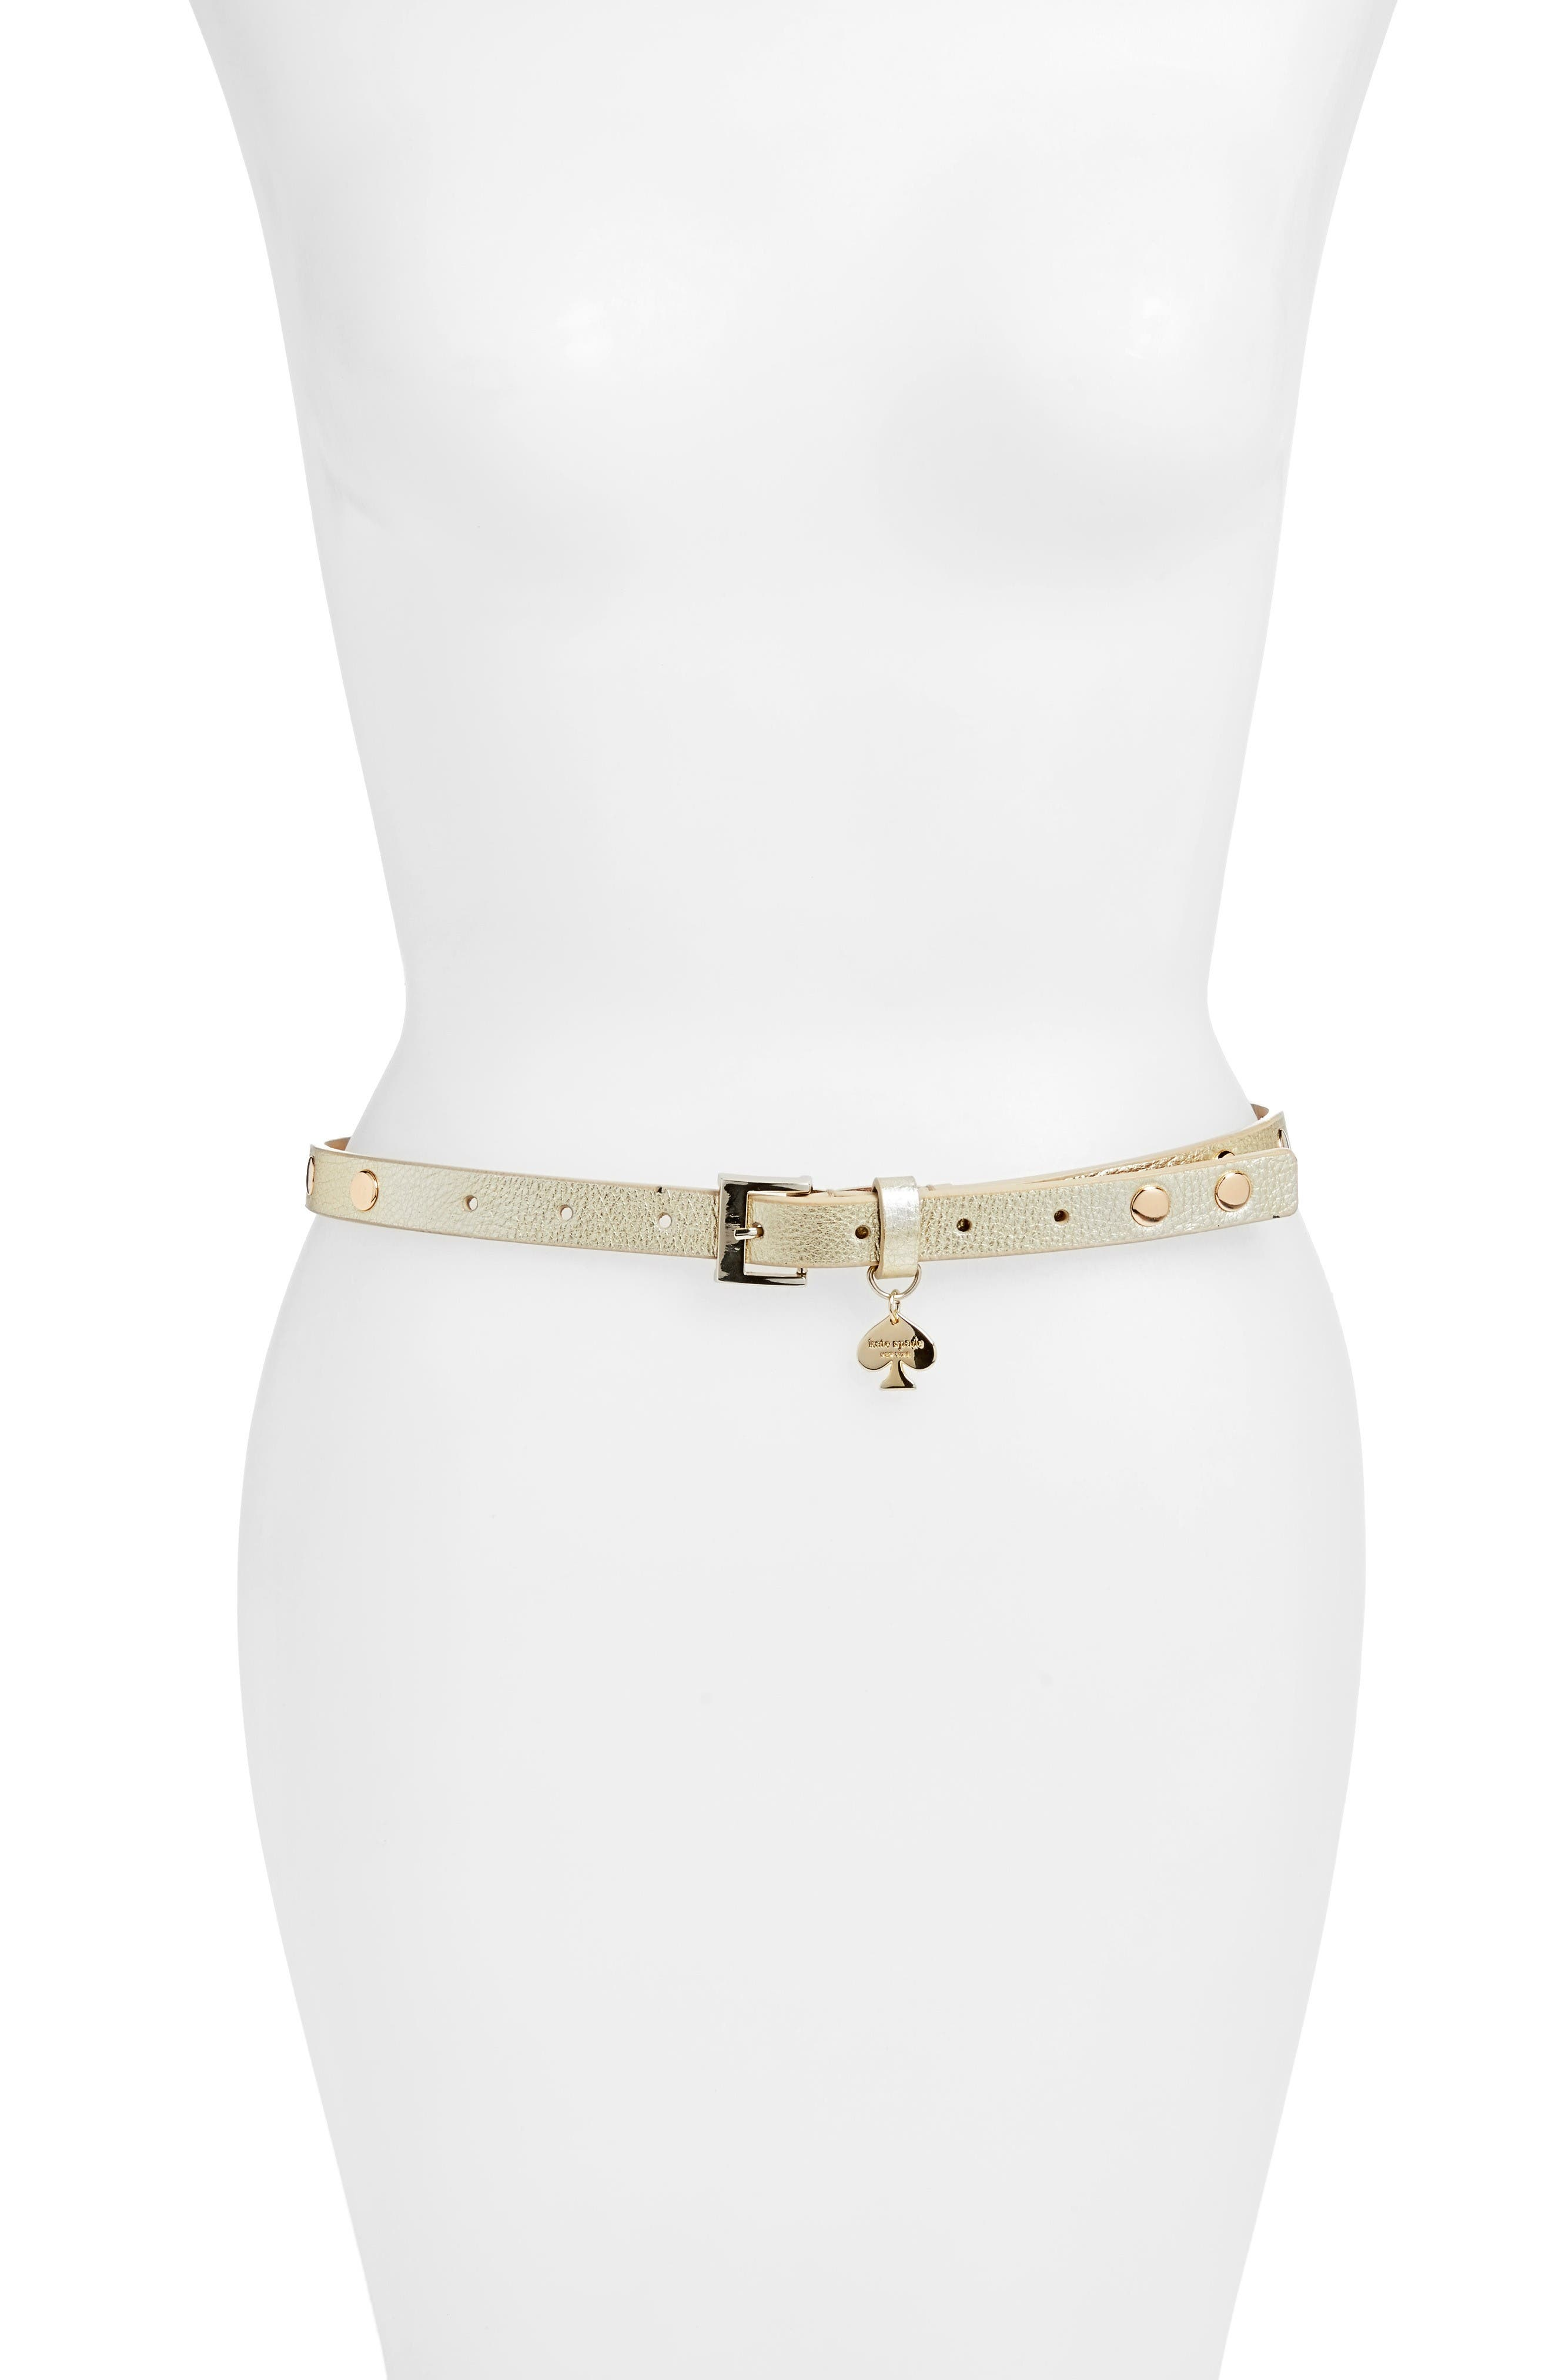 KATE SPADE NEW YORK studded leather belt